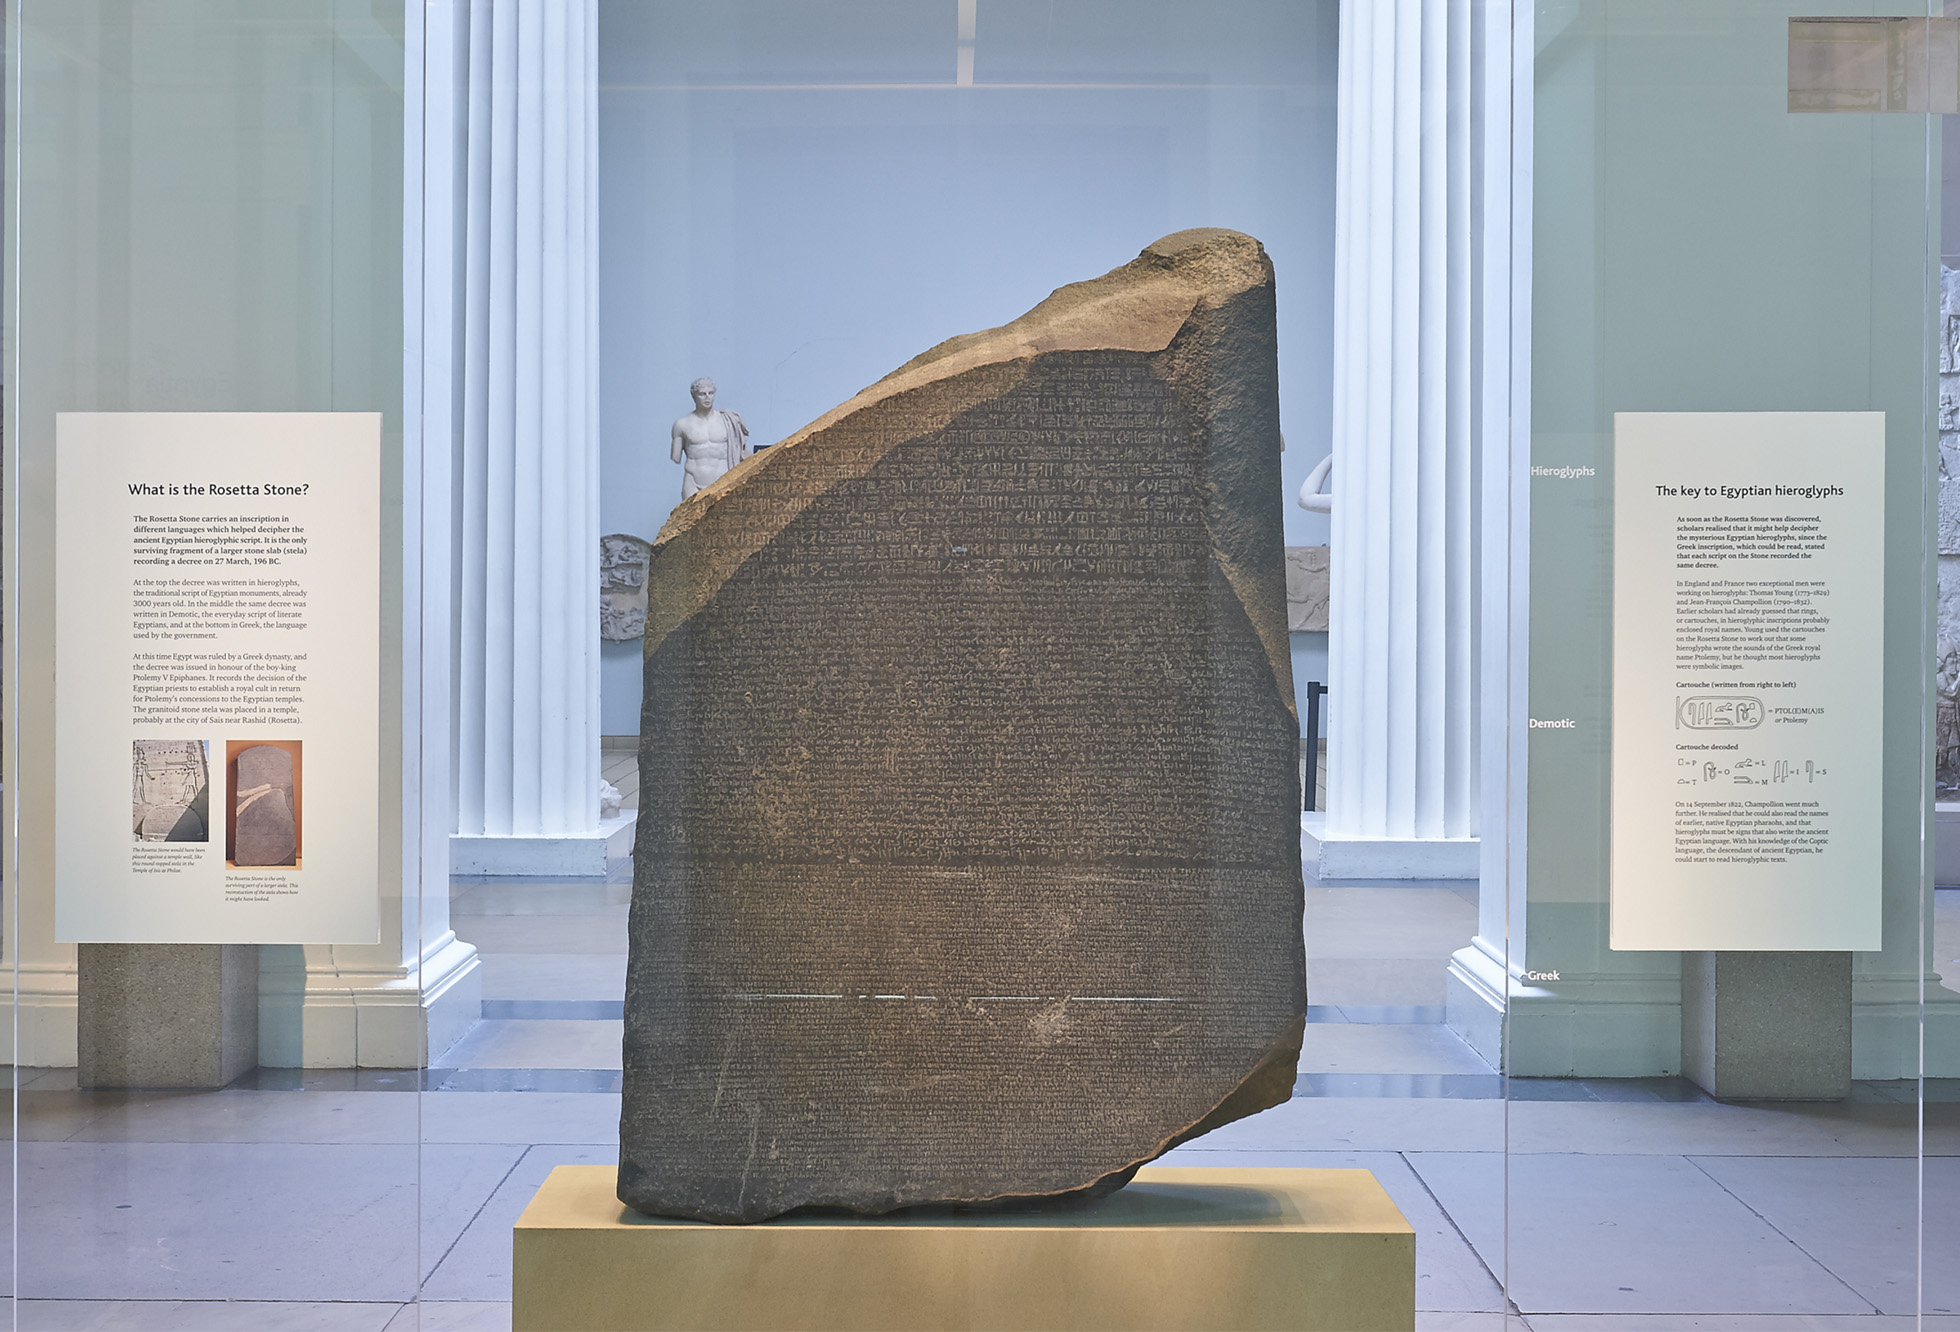 Mesum Of Living Languages everything you ever wanted to know about the rosetta stone – the